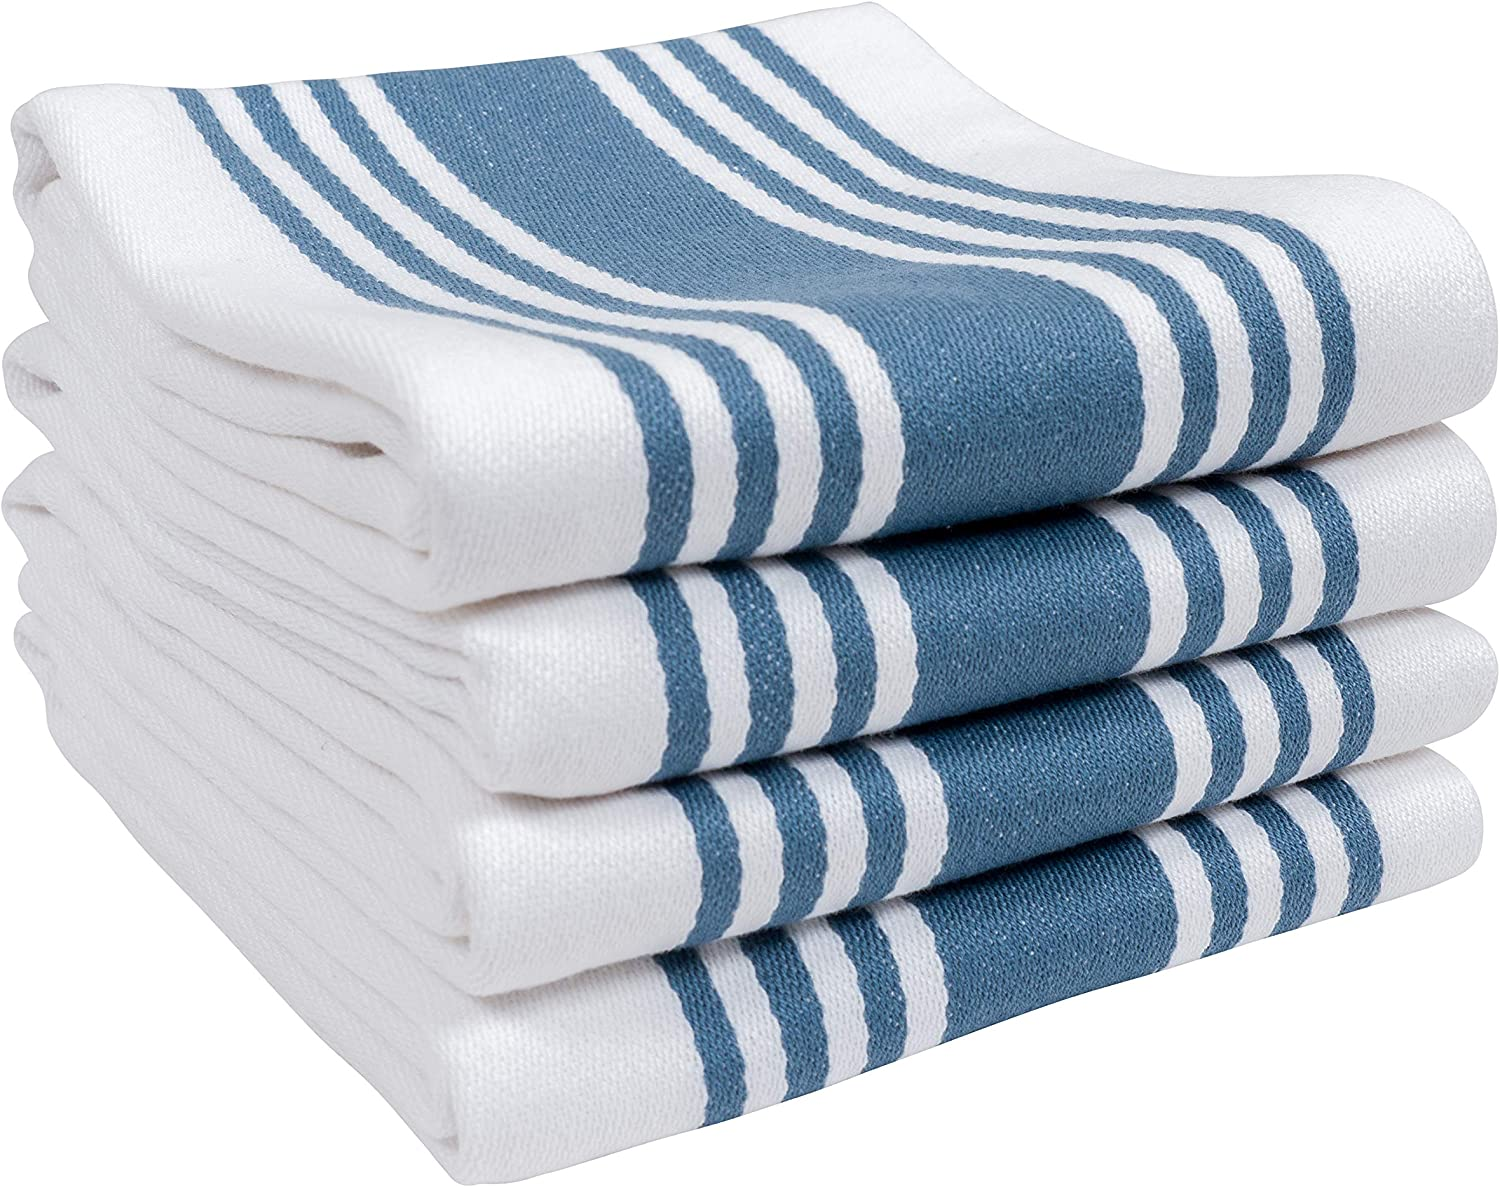 KAF Home Ranking TOP14 Pantry Madison Stripe Kitchen Set Opening large release sale 4 of 100-Perc Towels